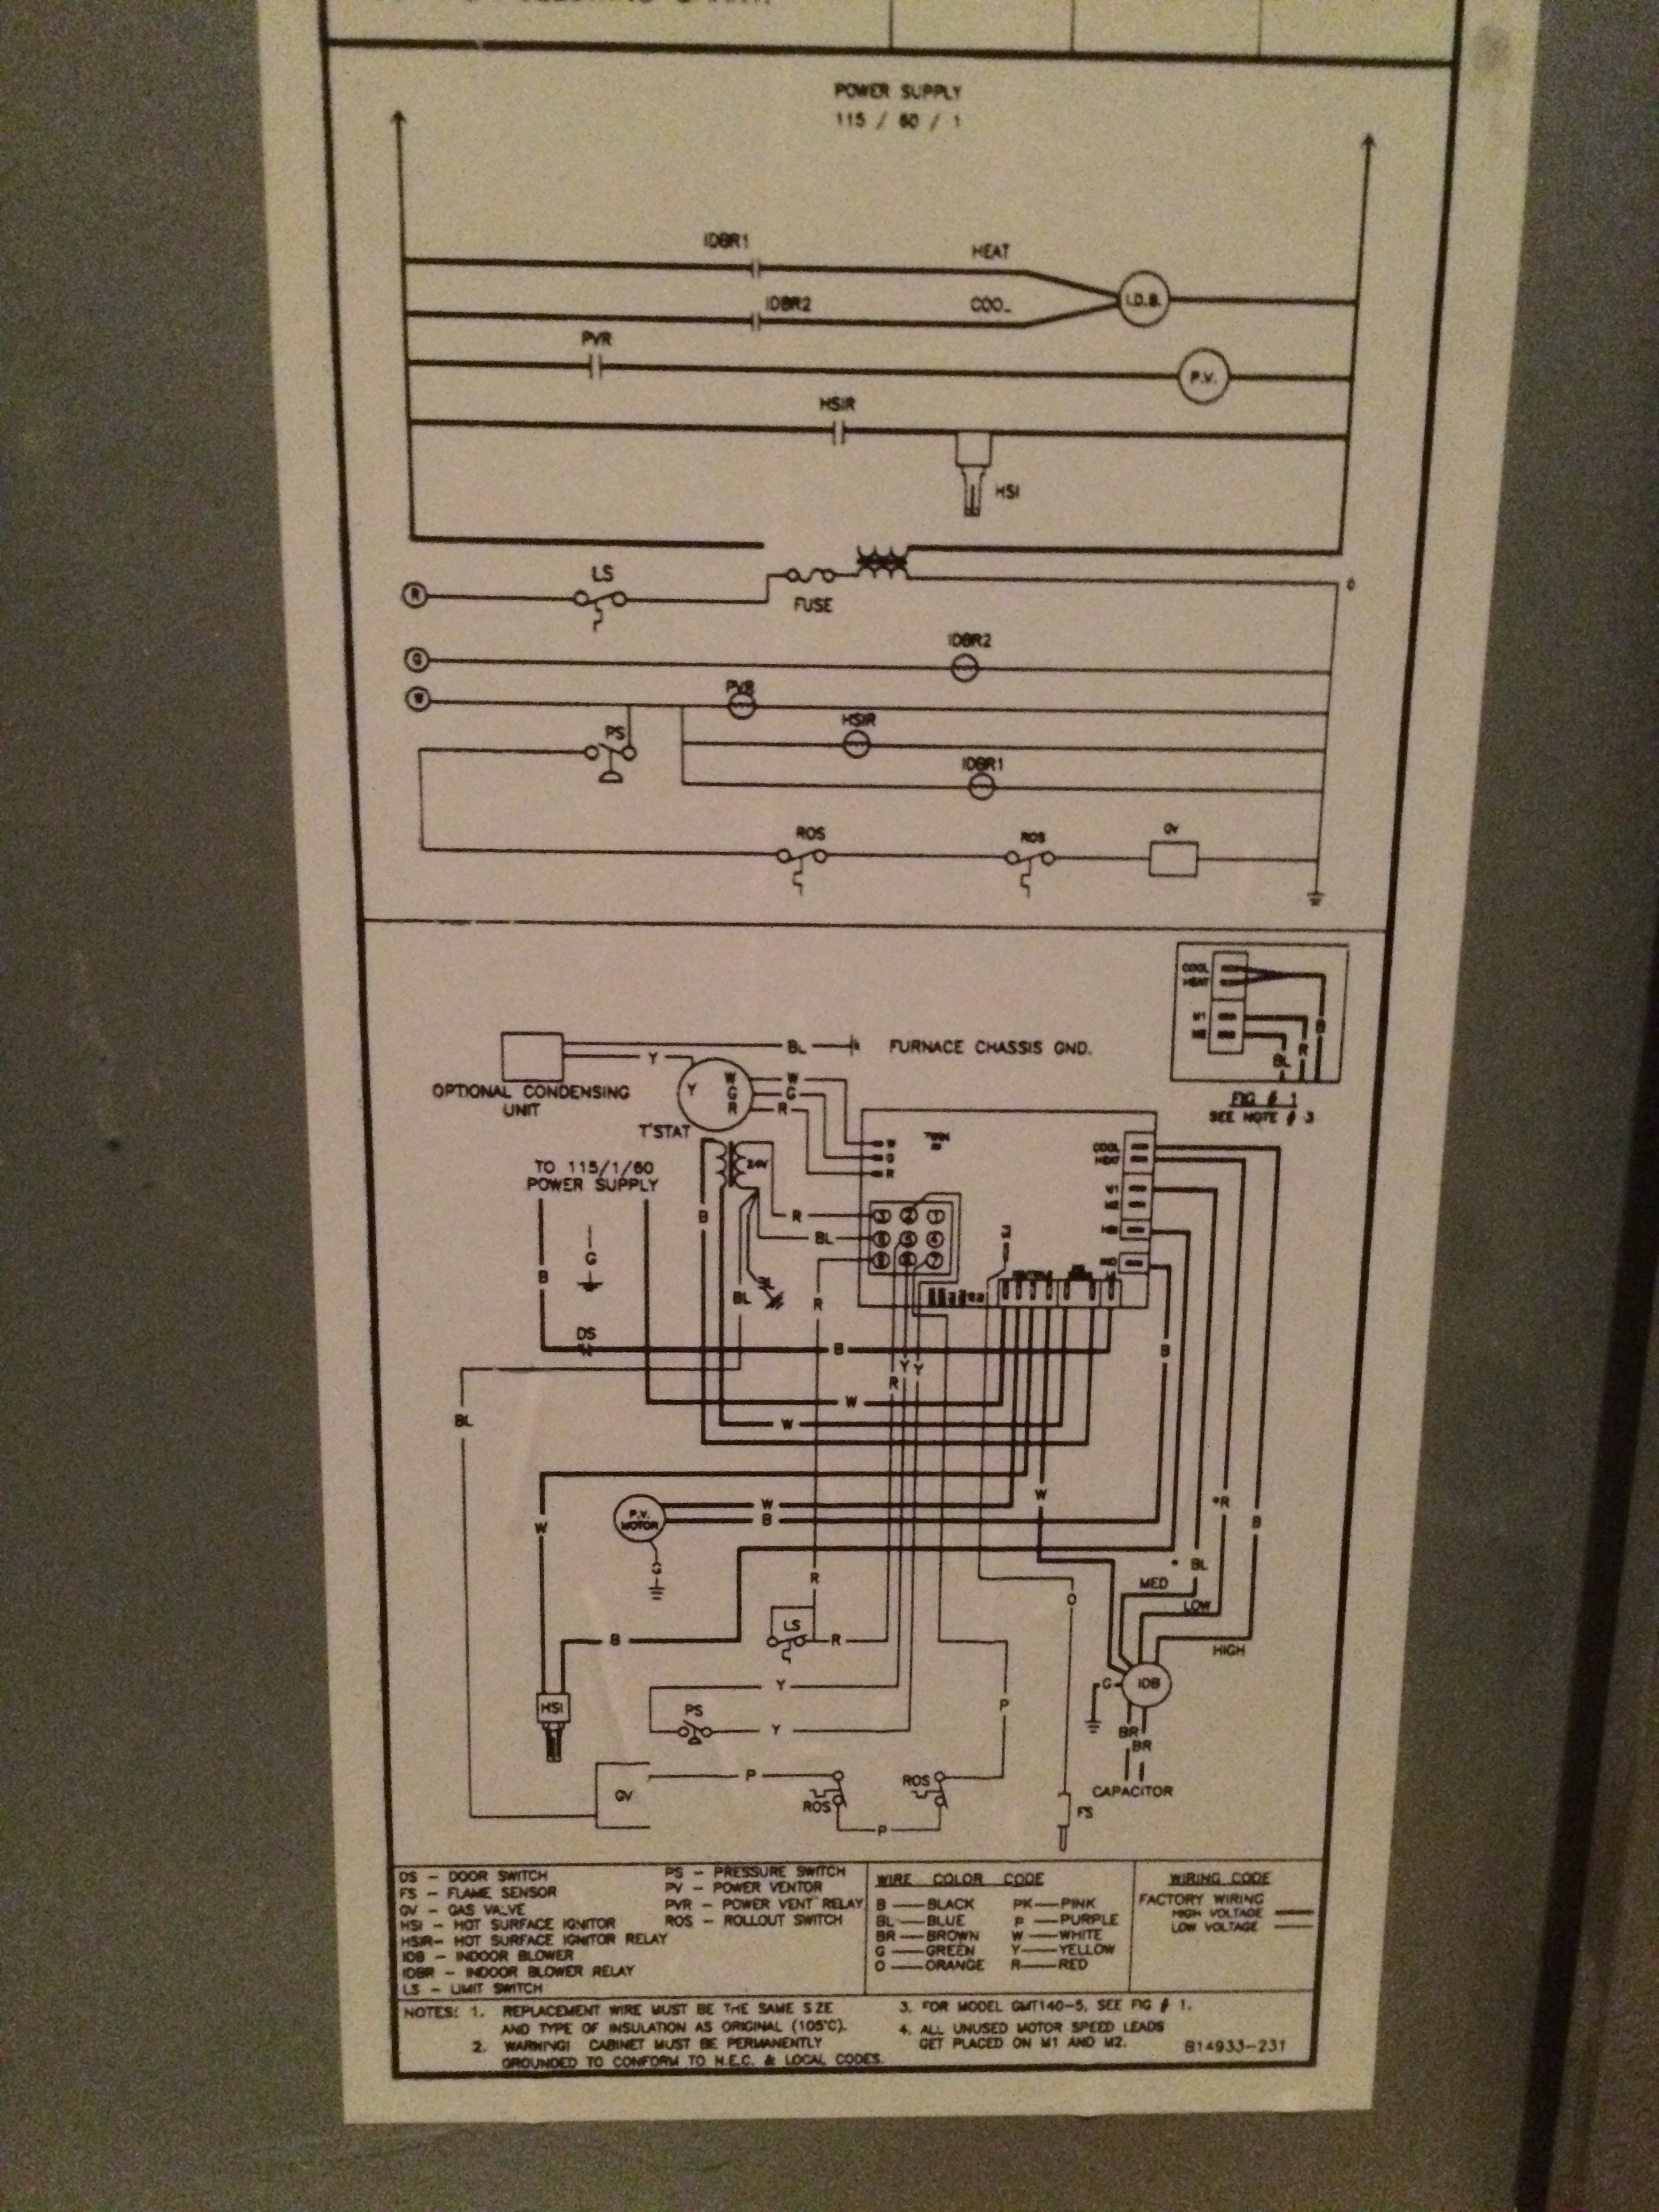 Wiring - Where Do I Connect The C Wire In My Furnace? - Home - Goodman Furnace Thermostat Wiring Diagram Nest